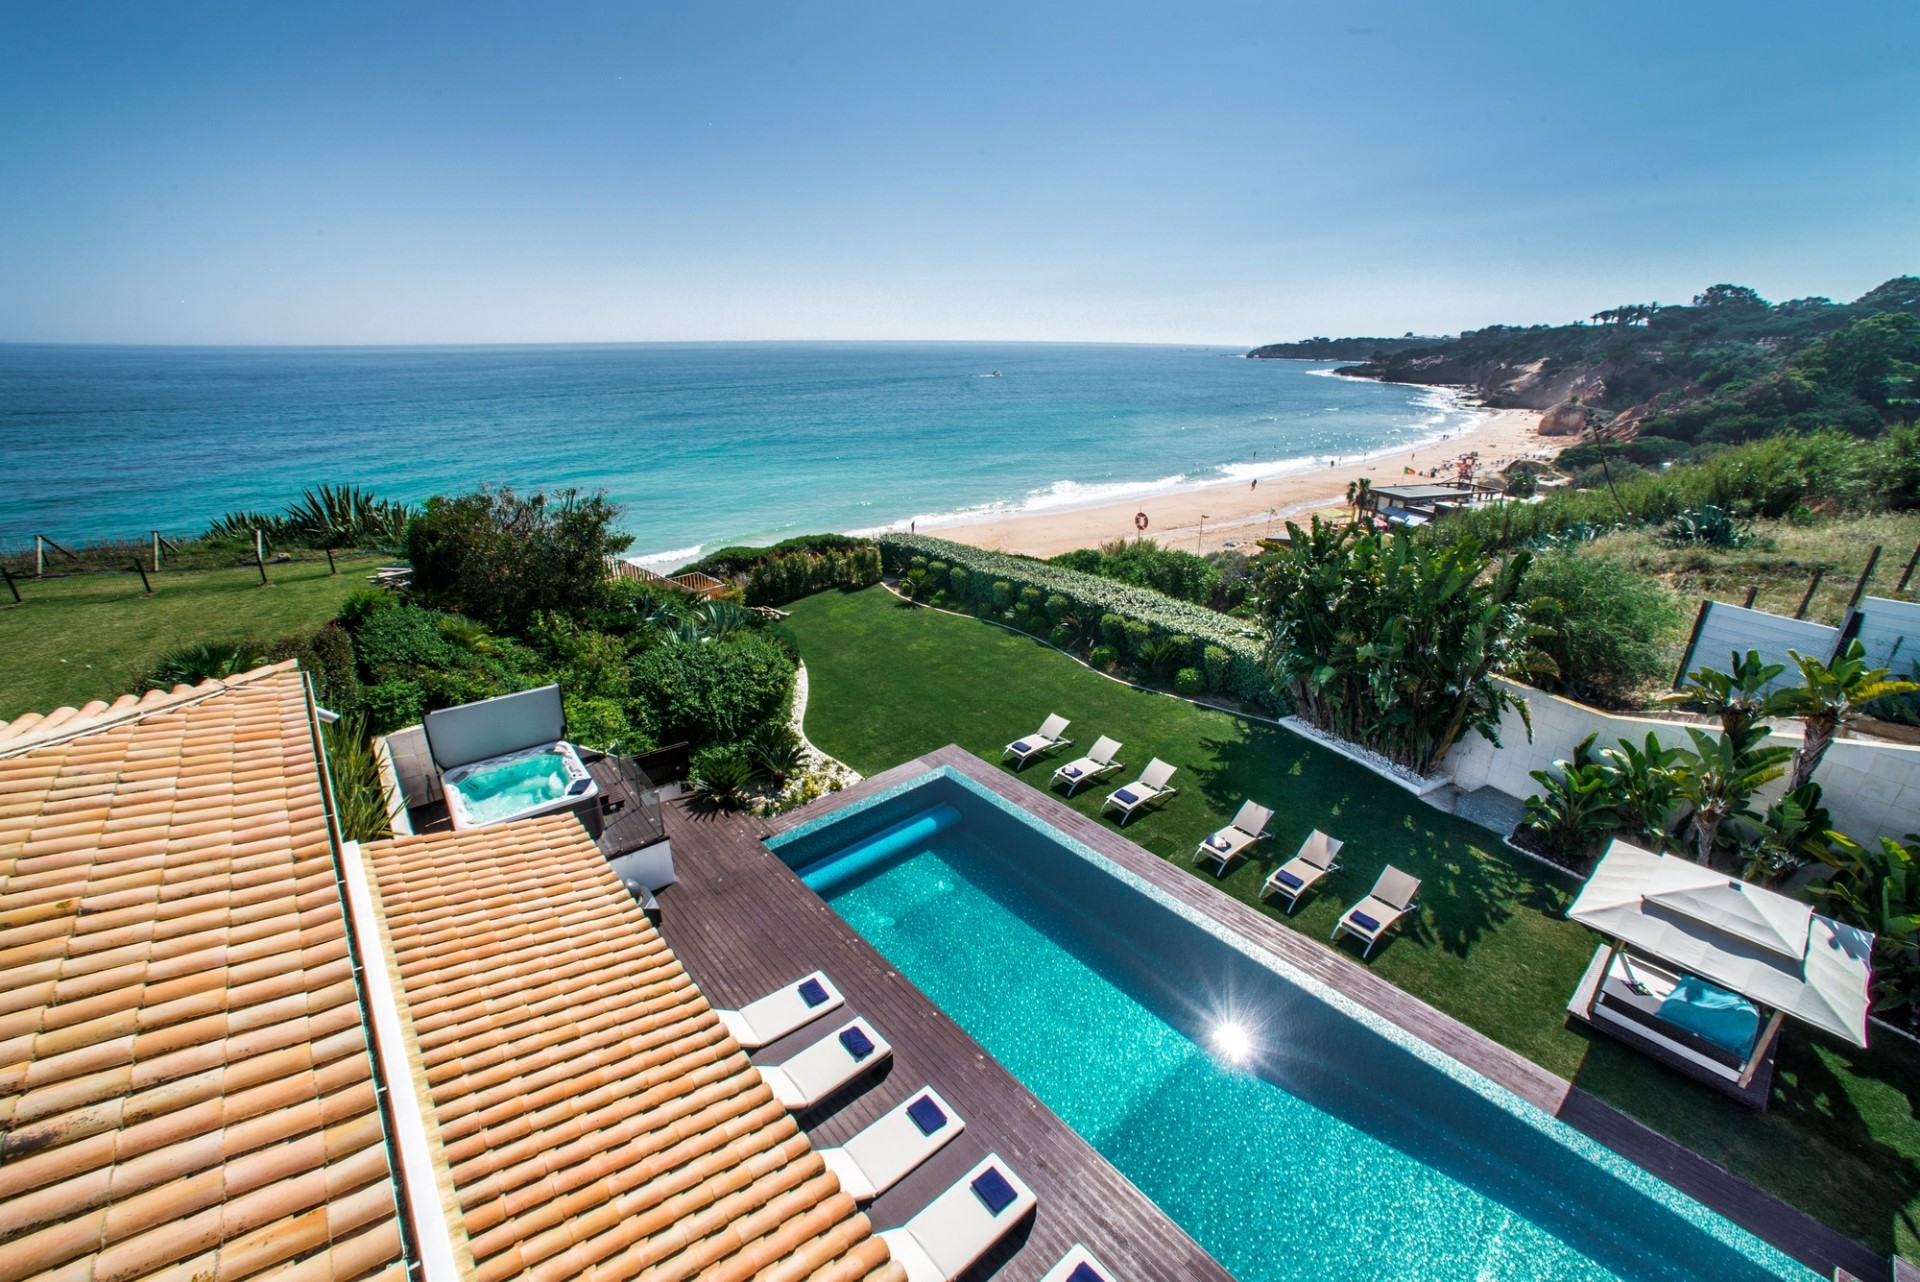 Luxury villa in portugal by the beach